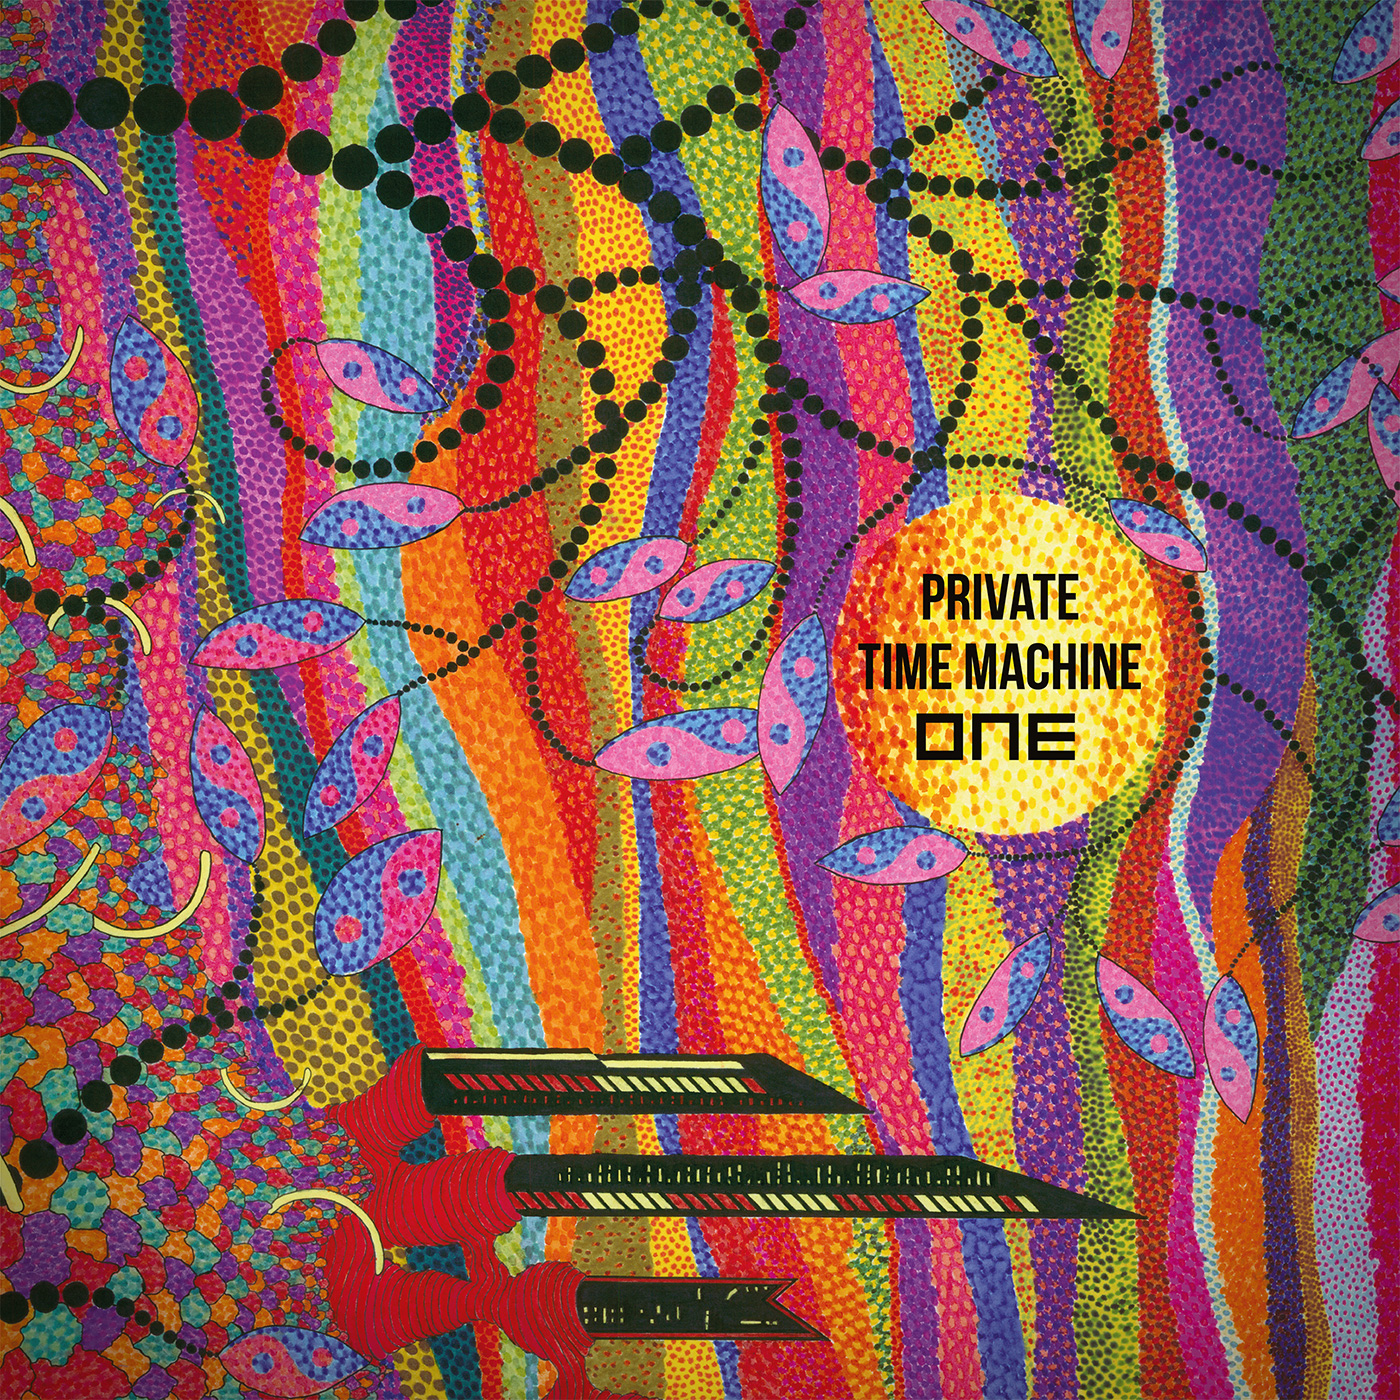 Private Time Machine – One (2019) [VINYL – 2x 12″LP, Incl. CD]